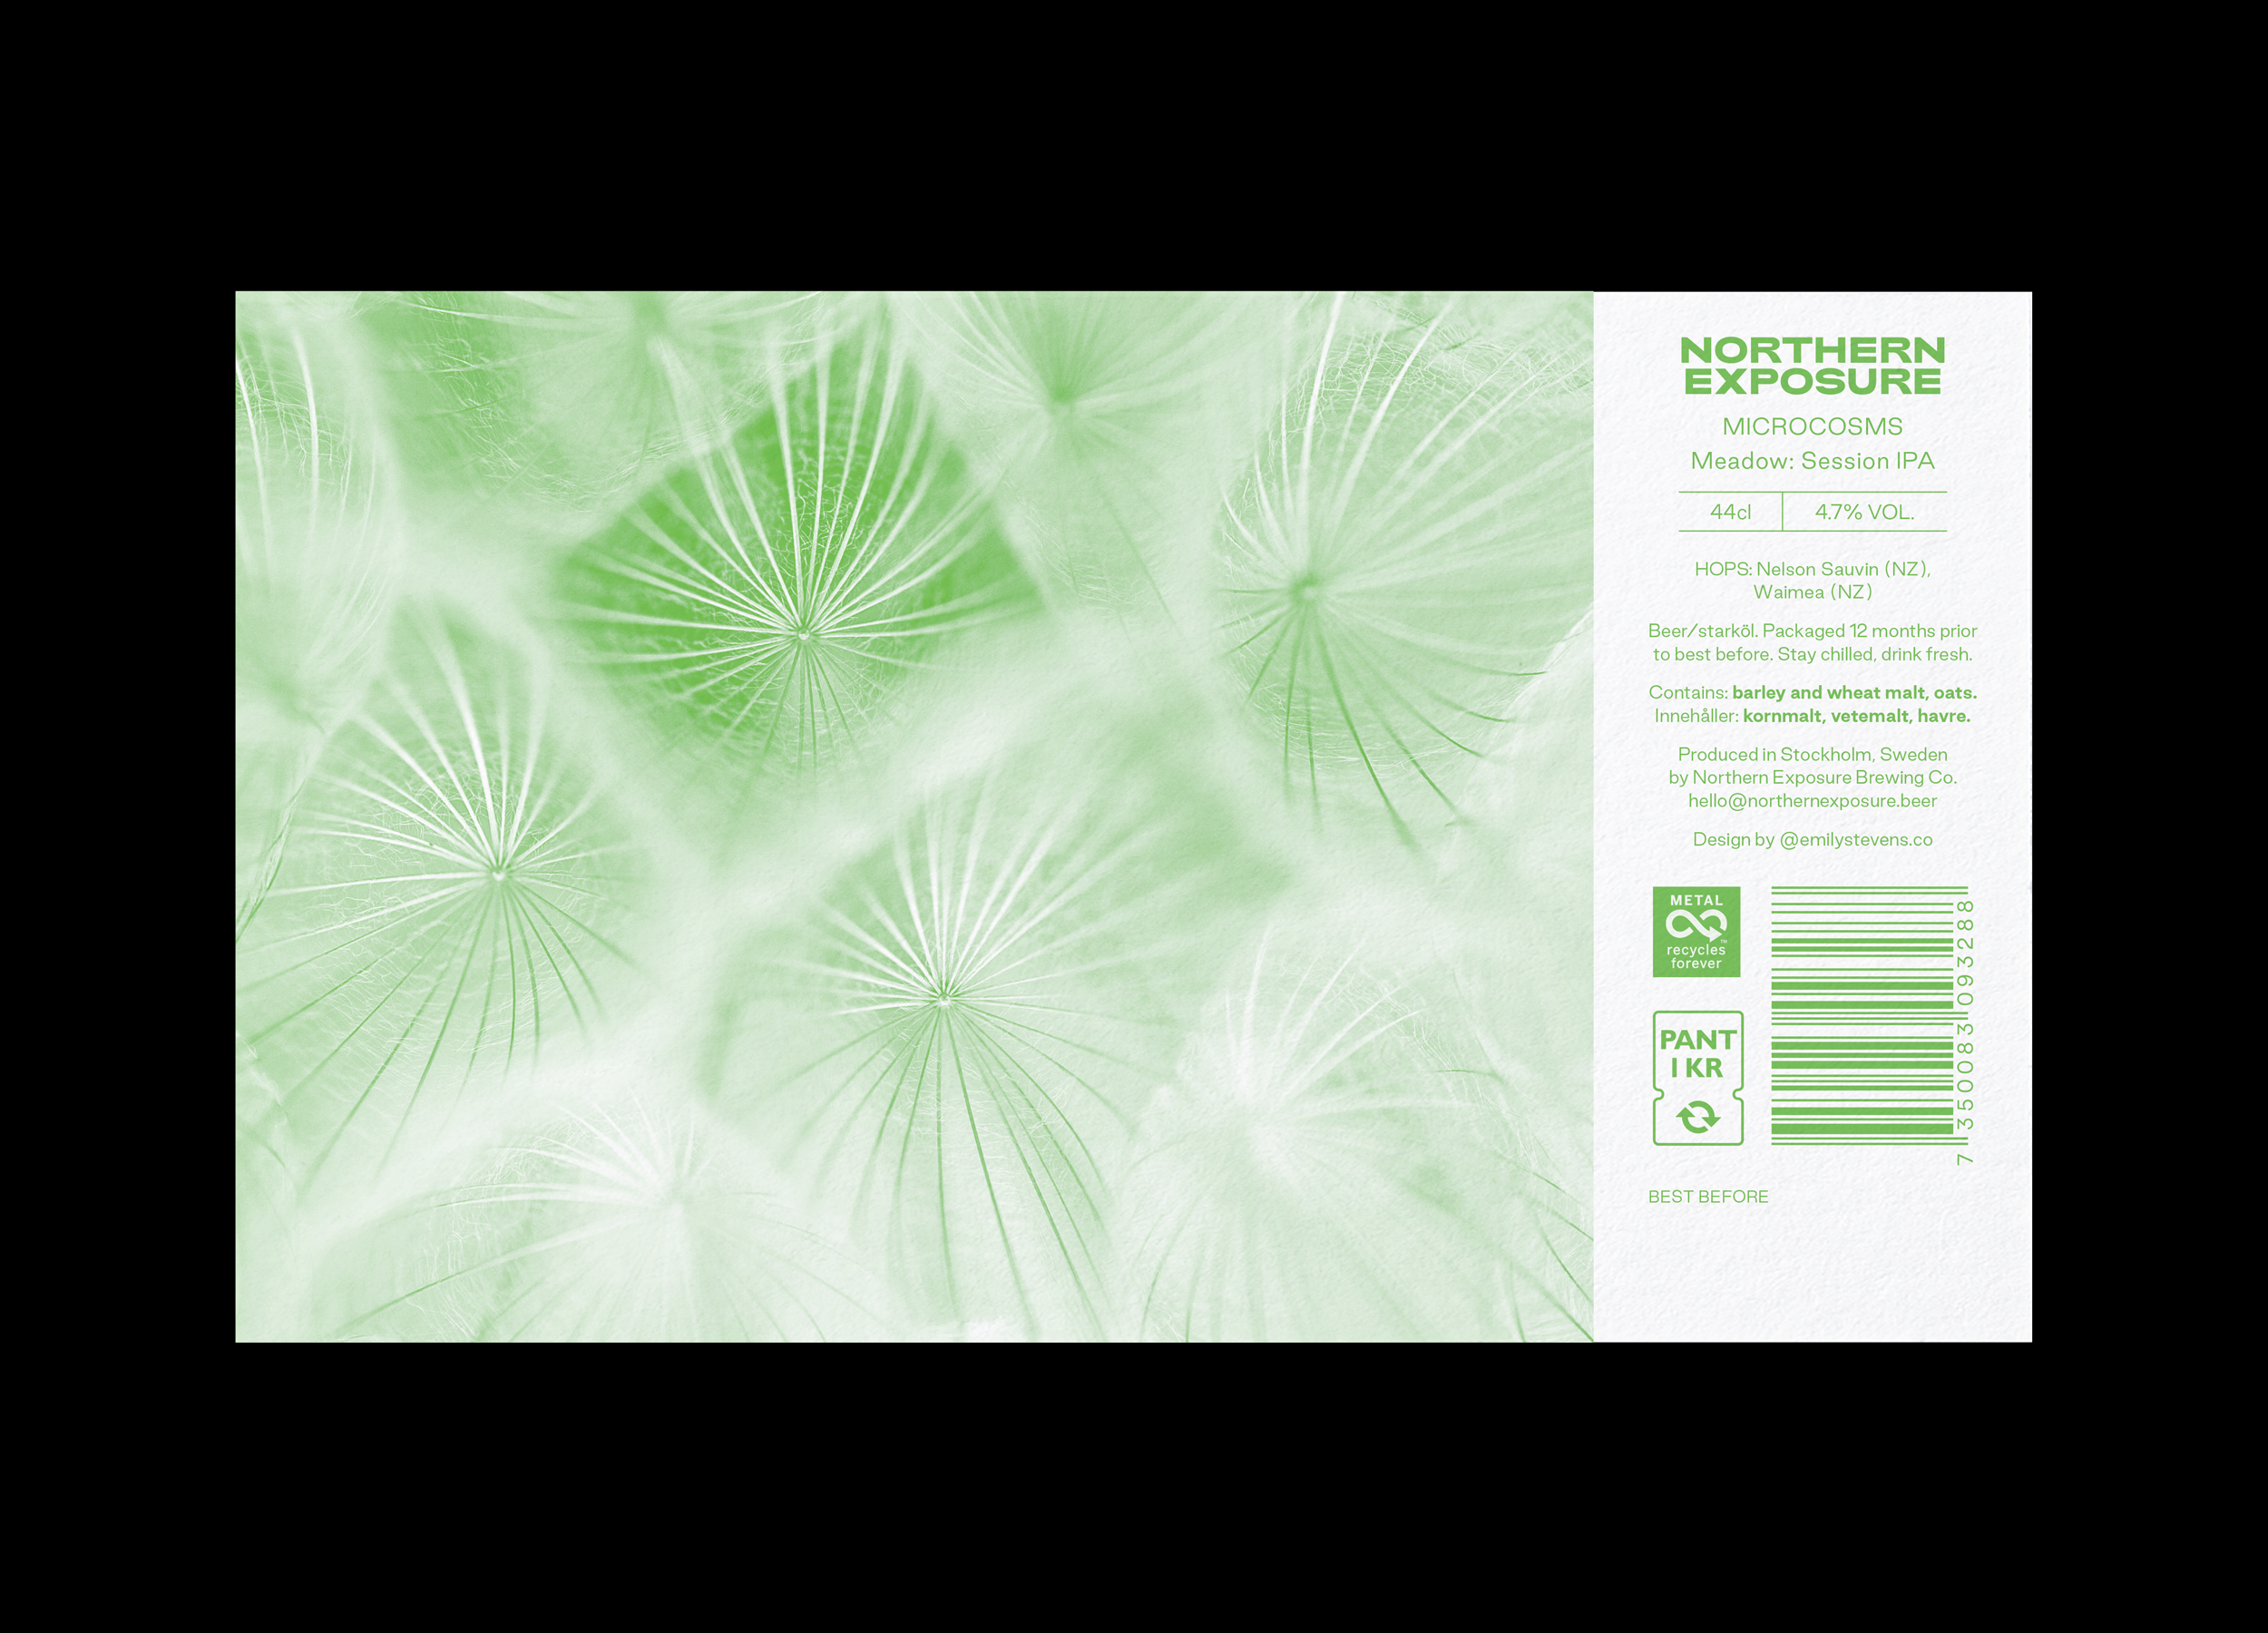 Northern Exposure label design for Microcosms: Meadow